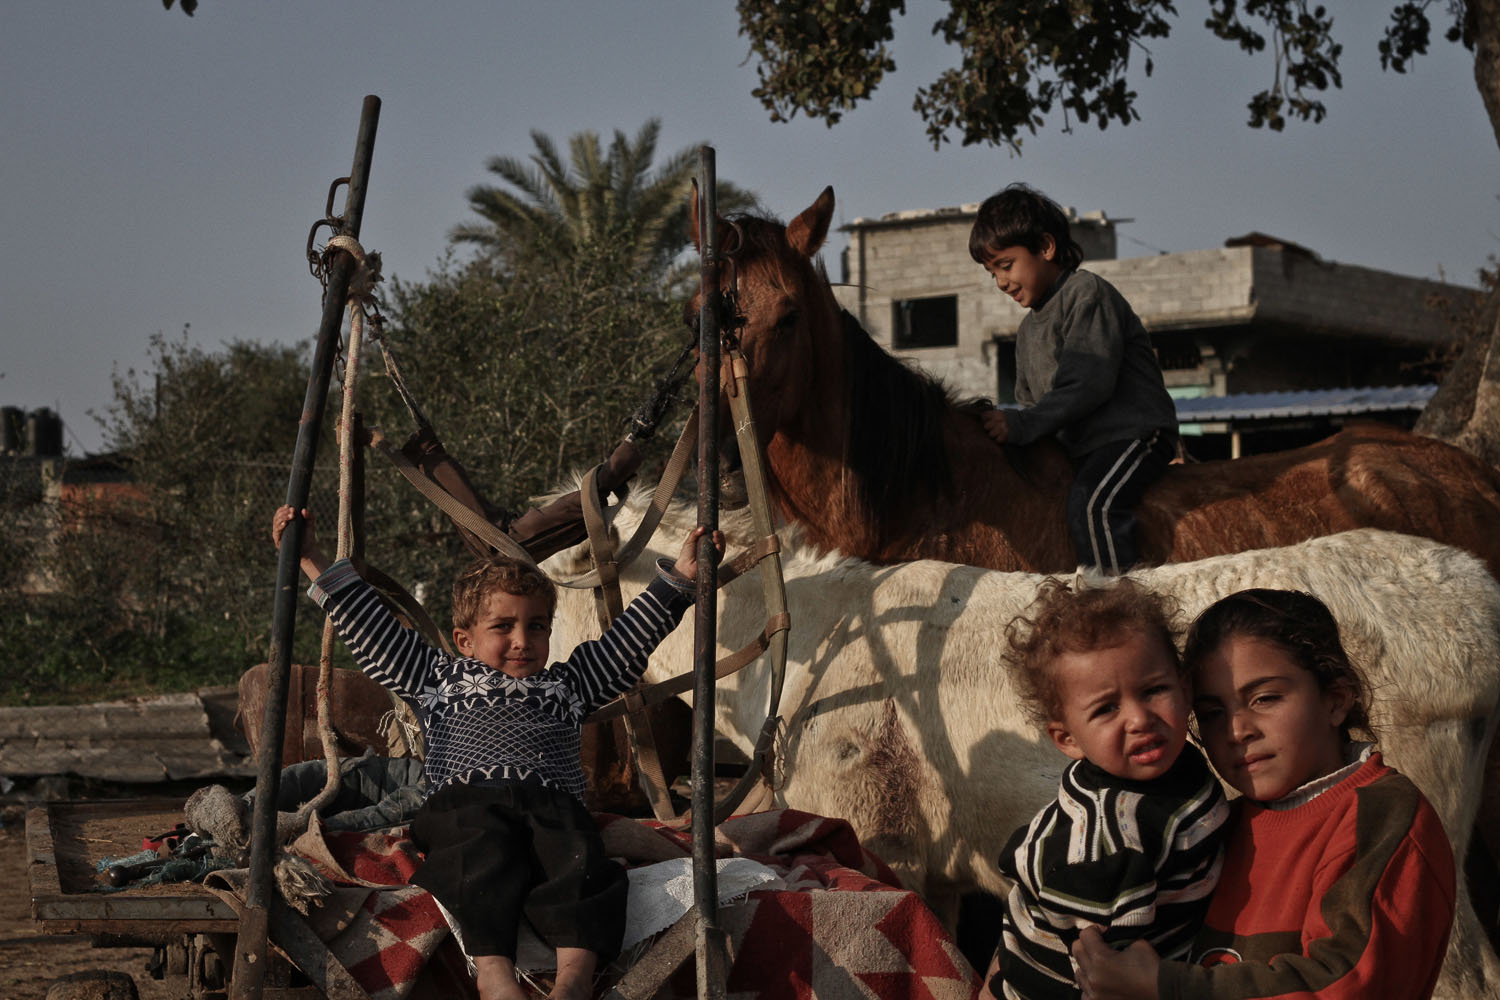 Jan. 5, 2014. Palestinian children play in front of their family's house in Beit Lahiya, a town in northern Gaza Strip.